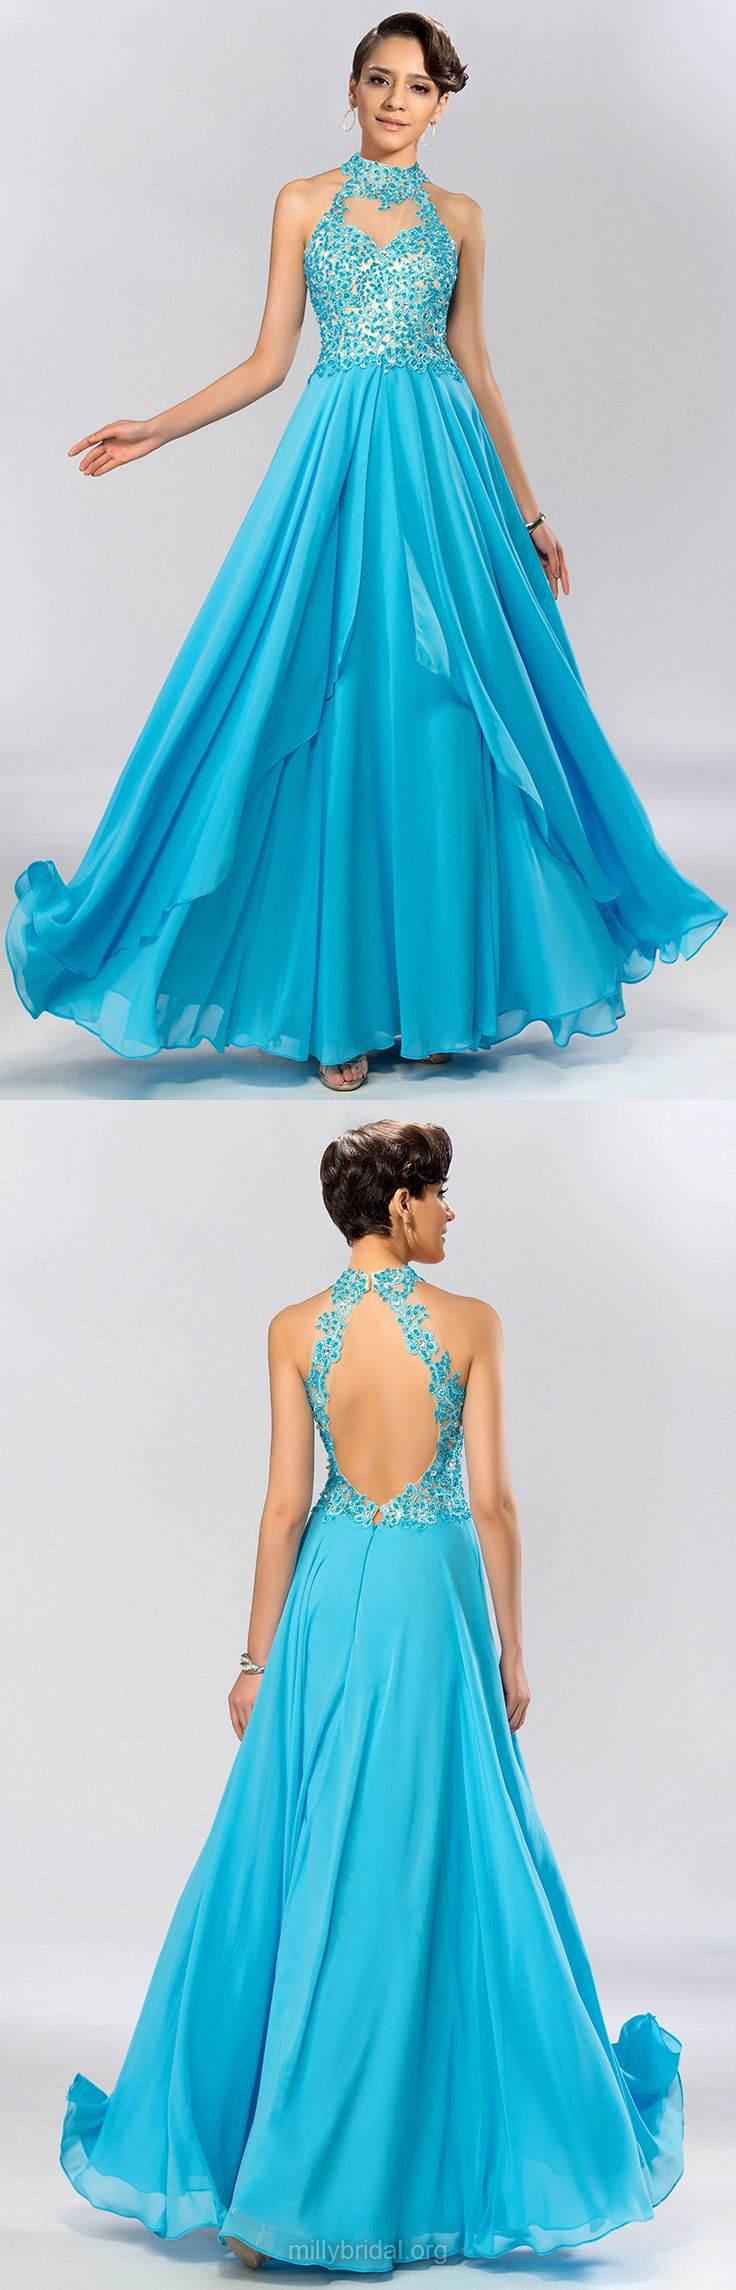 Blue prom dresses long prom dresses lace prom dresses prom